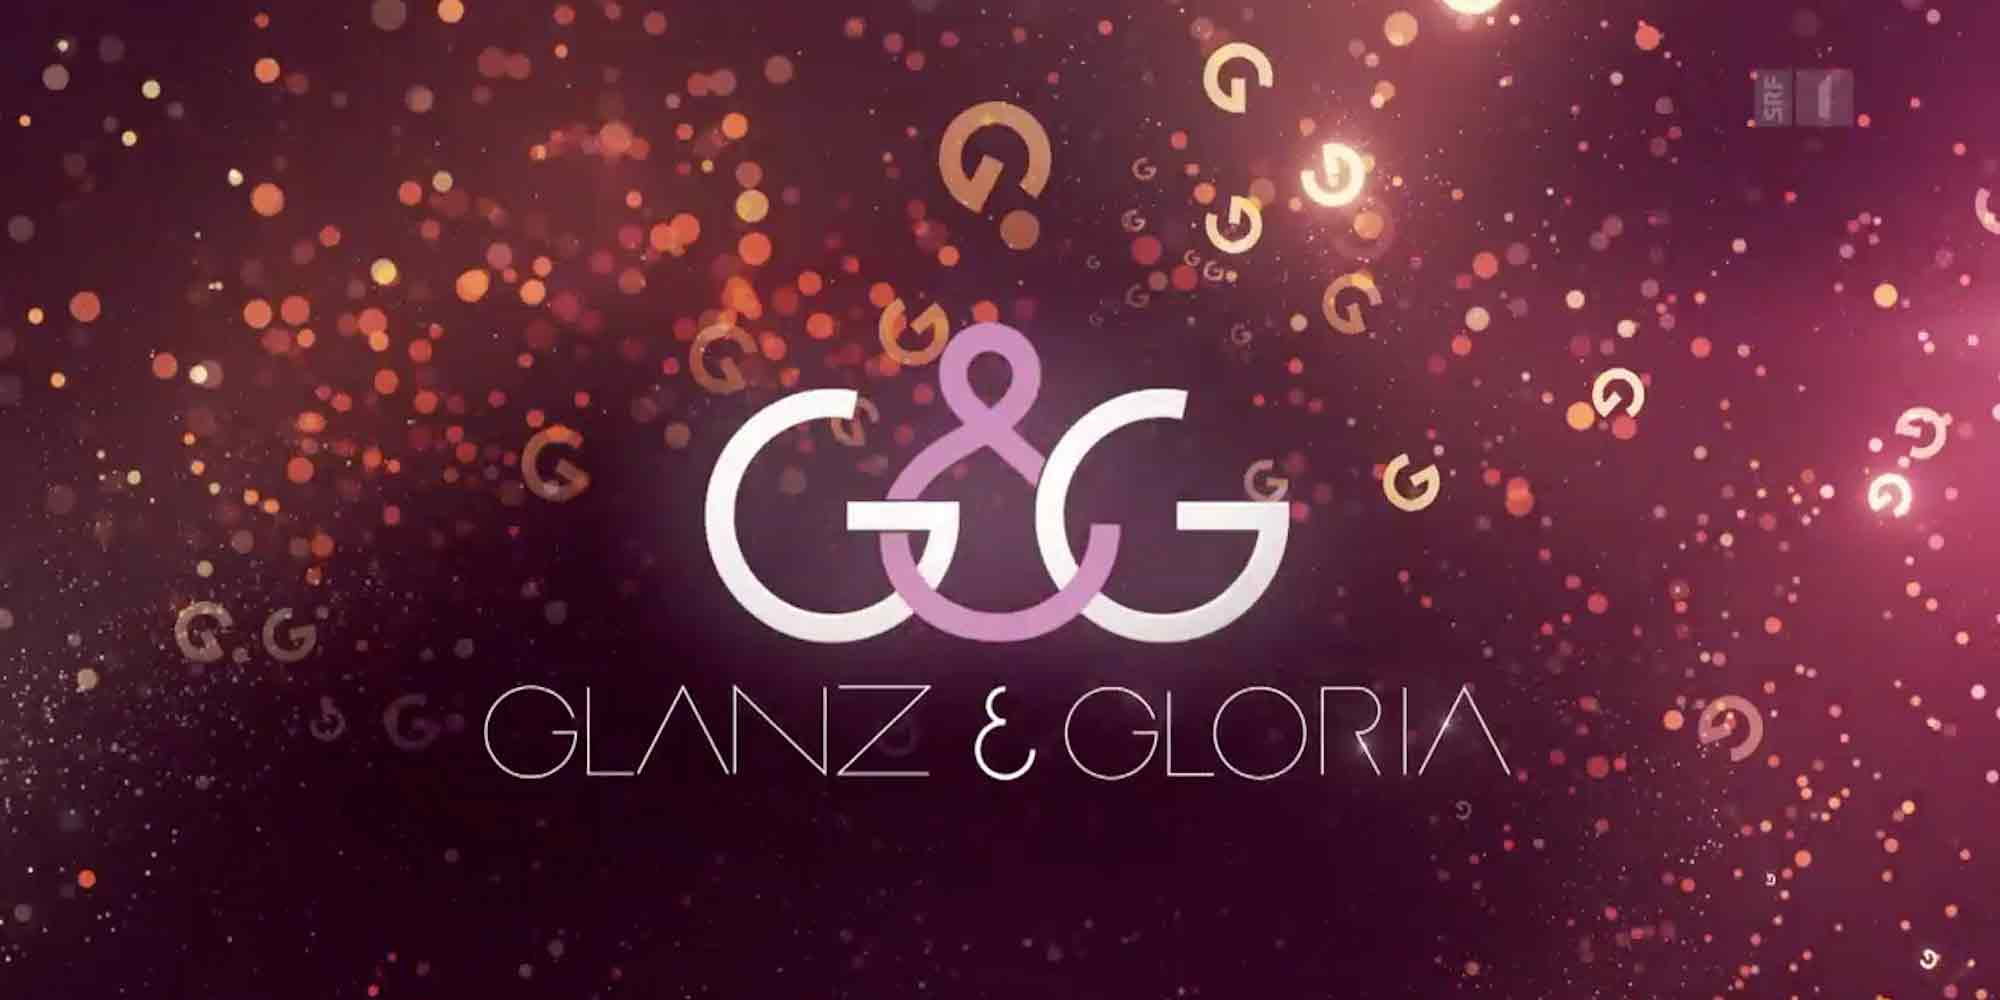 """Dust of Soul in the Swiss channel SRF TV show """"Glanz & Gloria"""""""